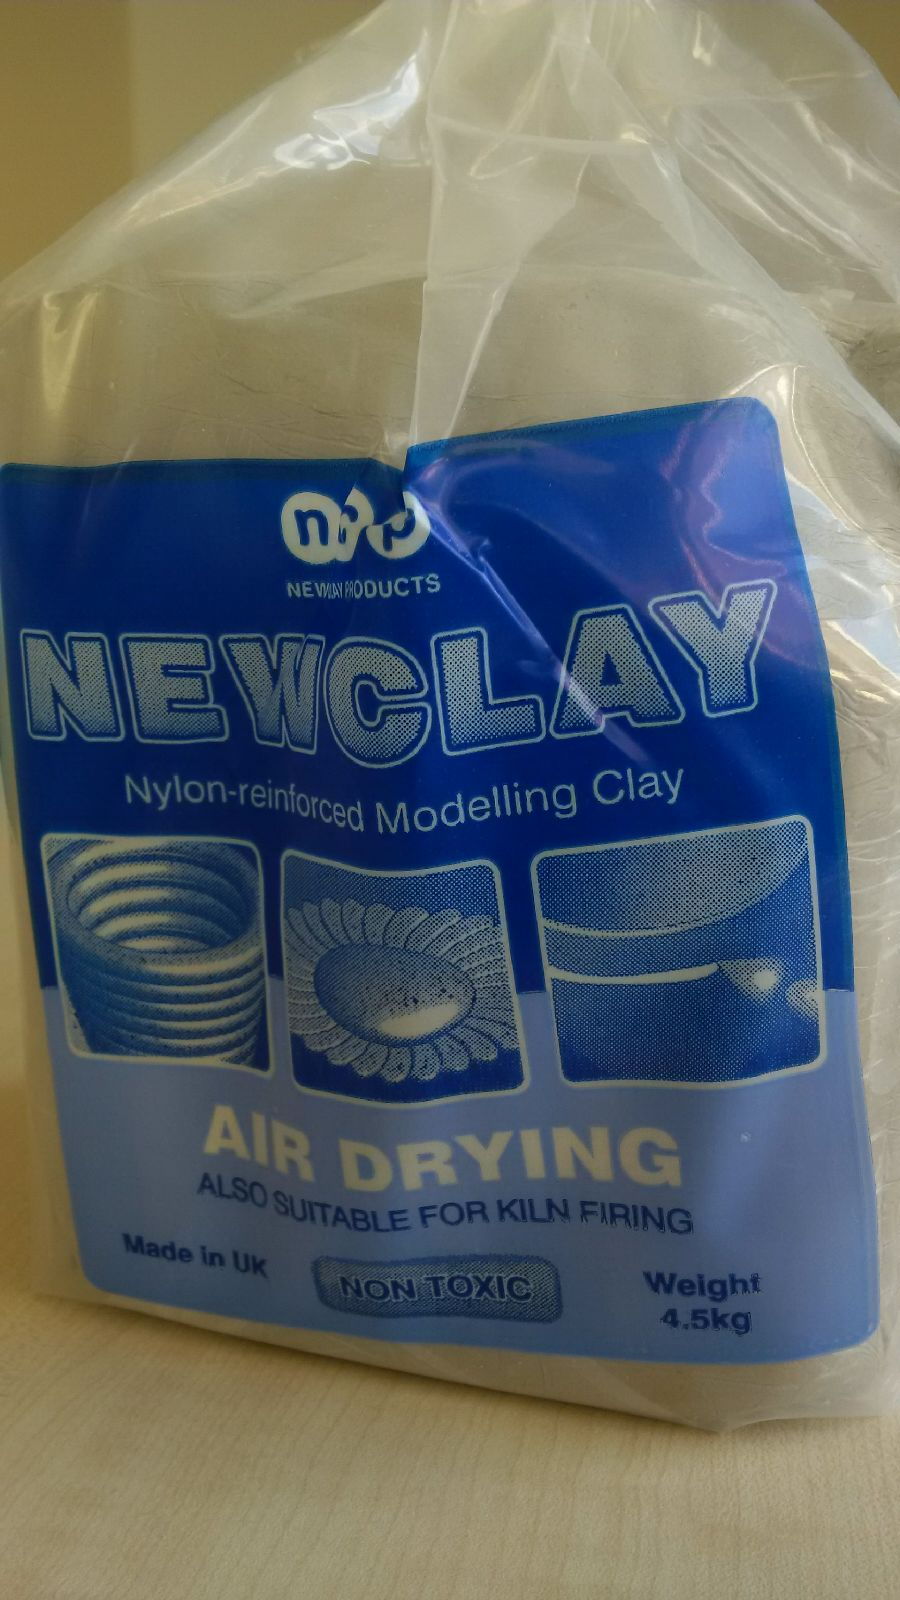 NEWCLAY - 4.5KG